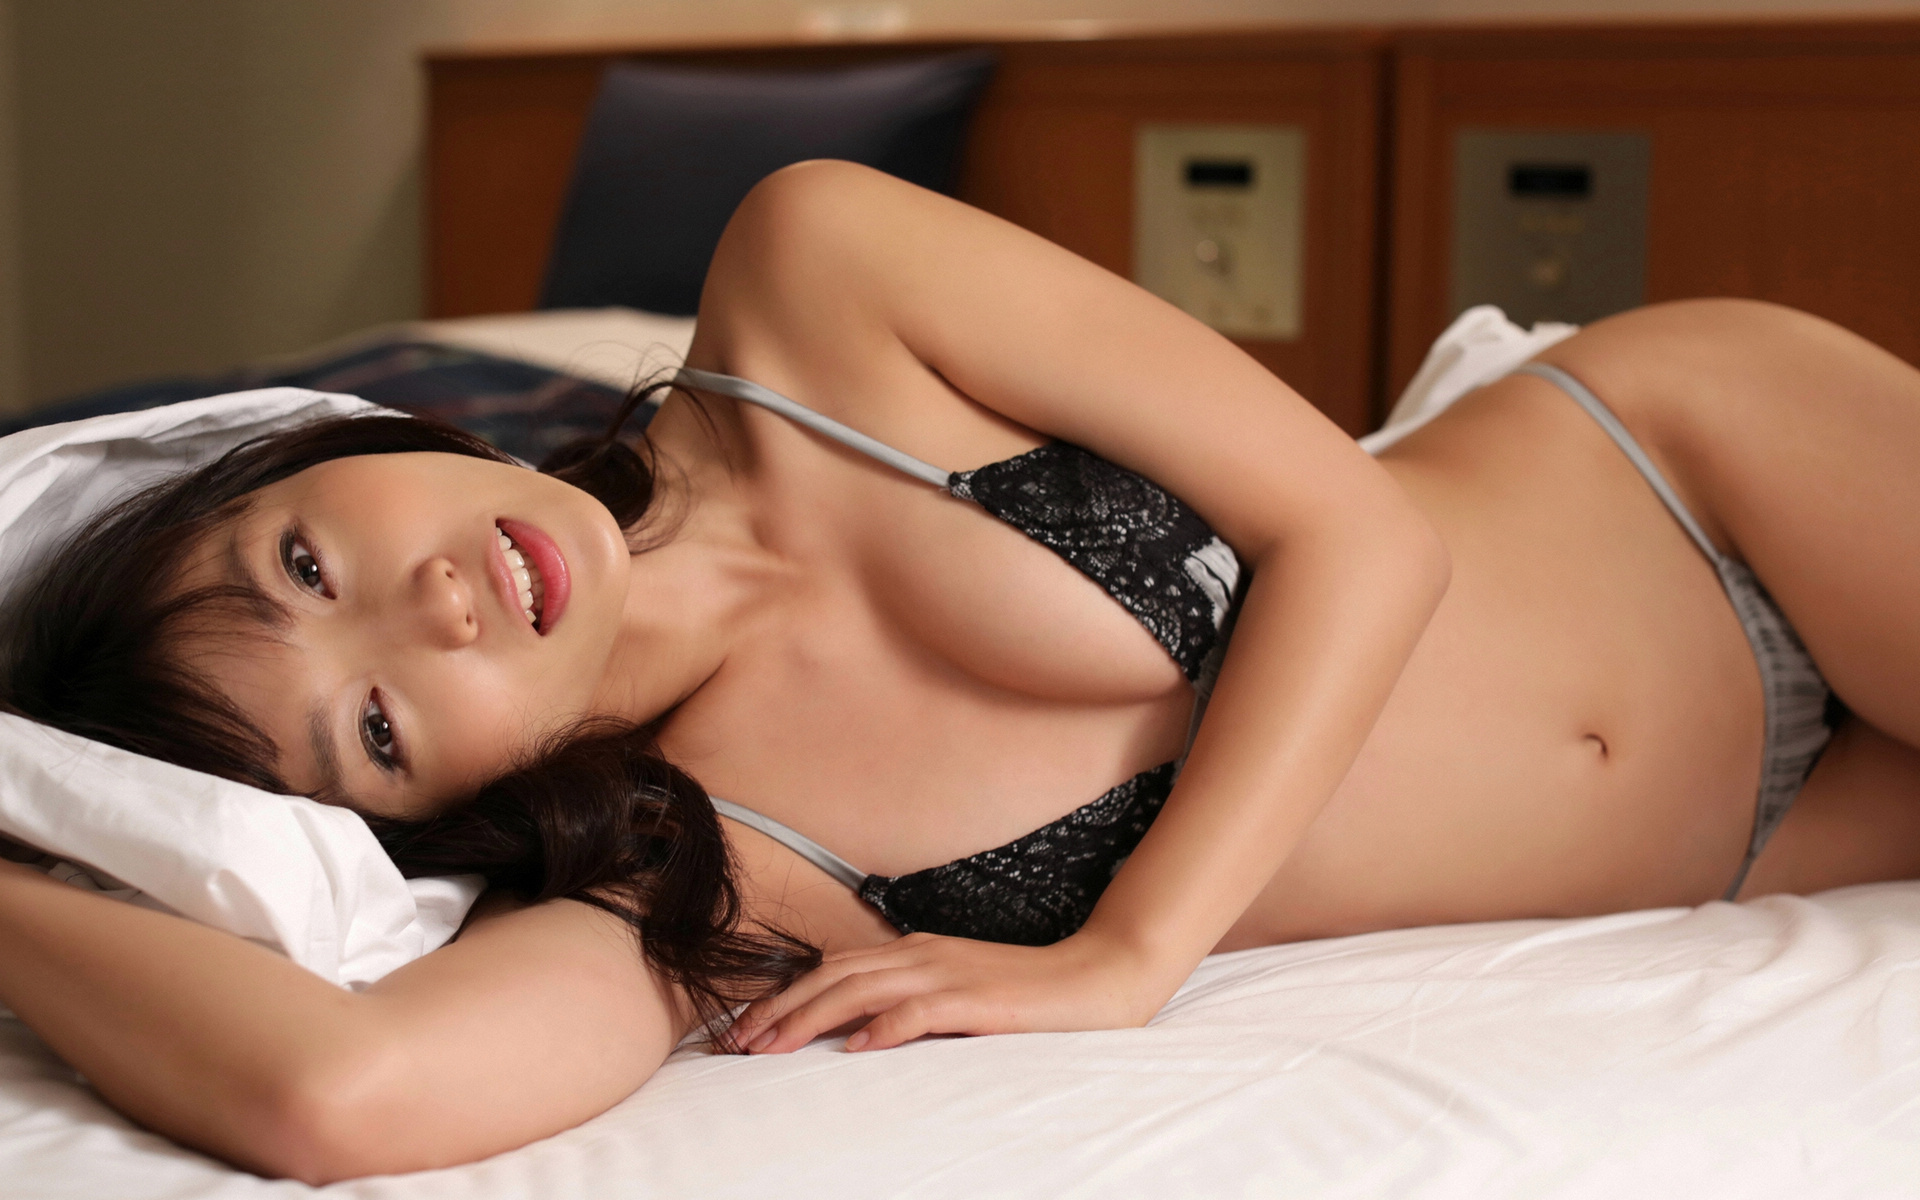 nude-great-asian-video-online